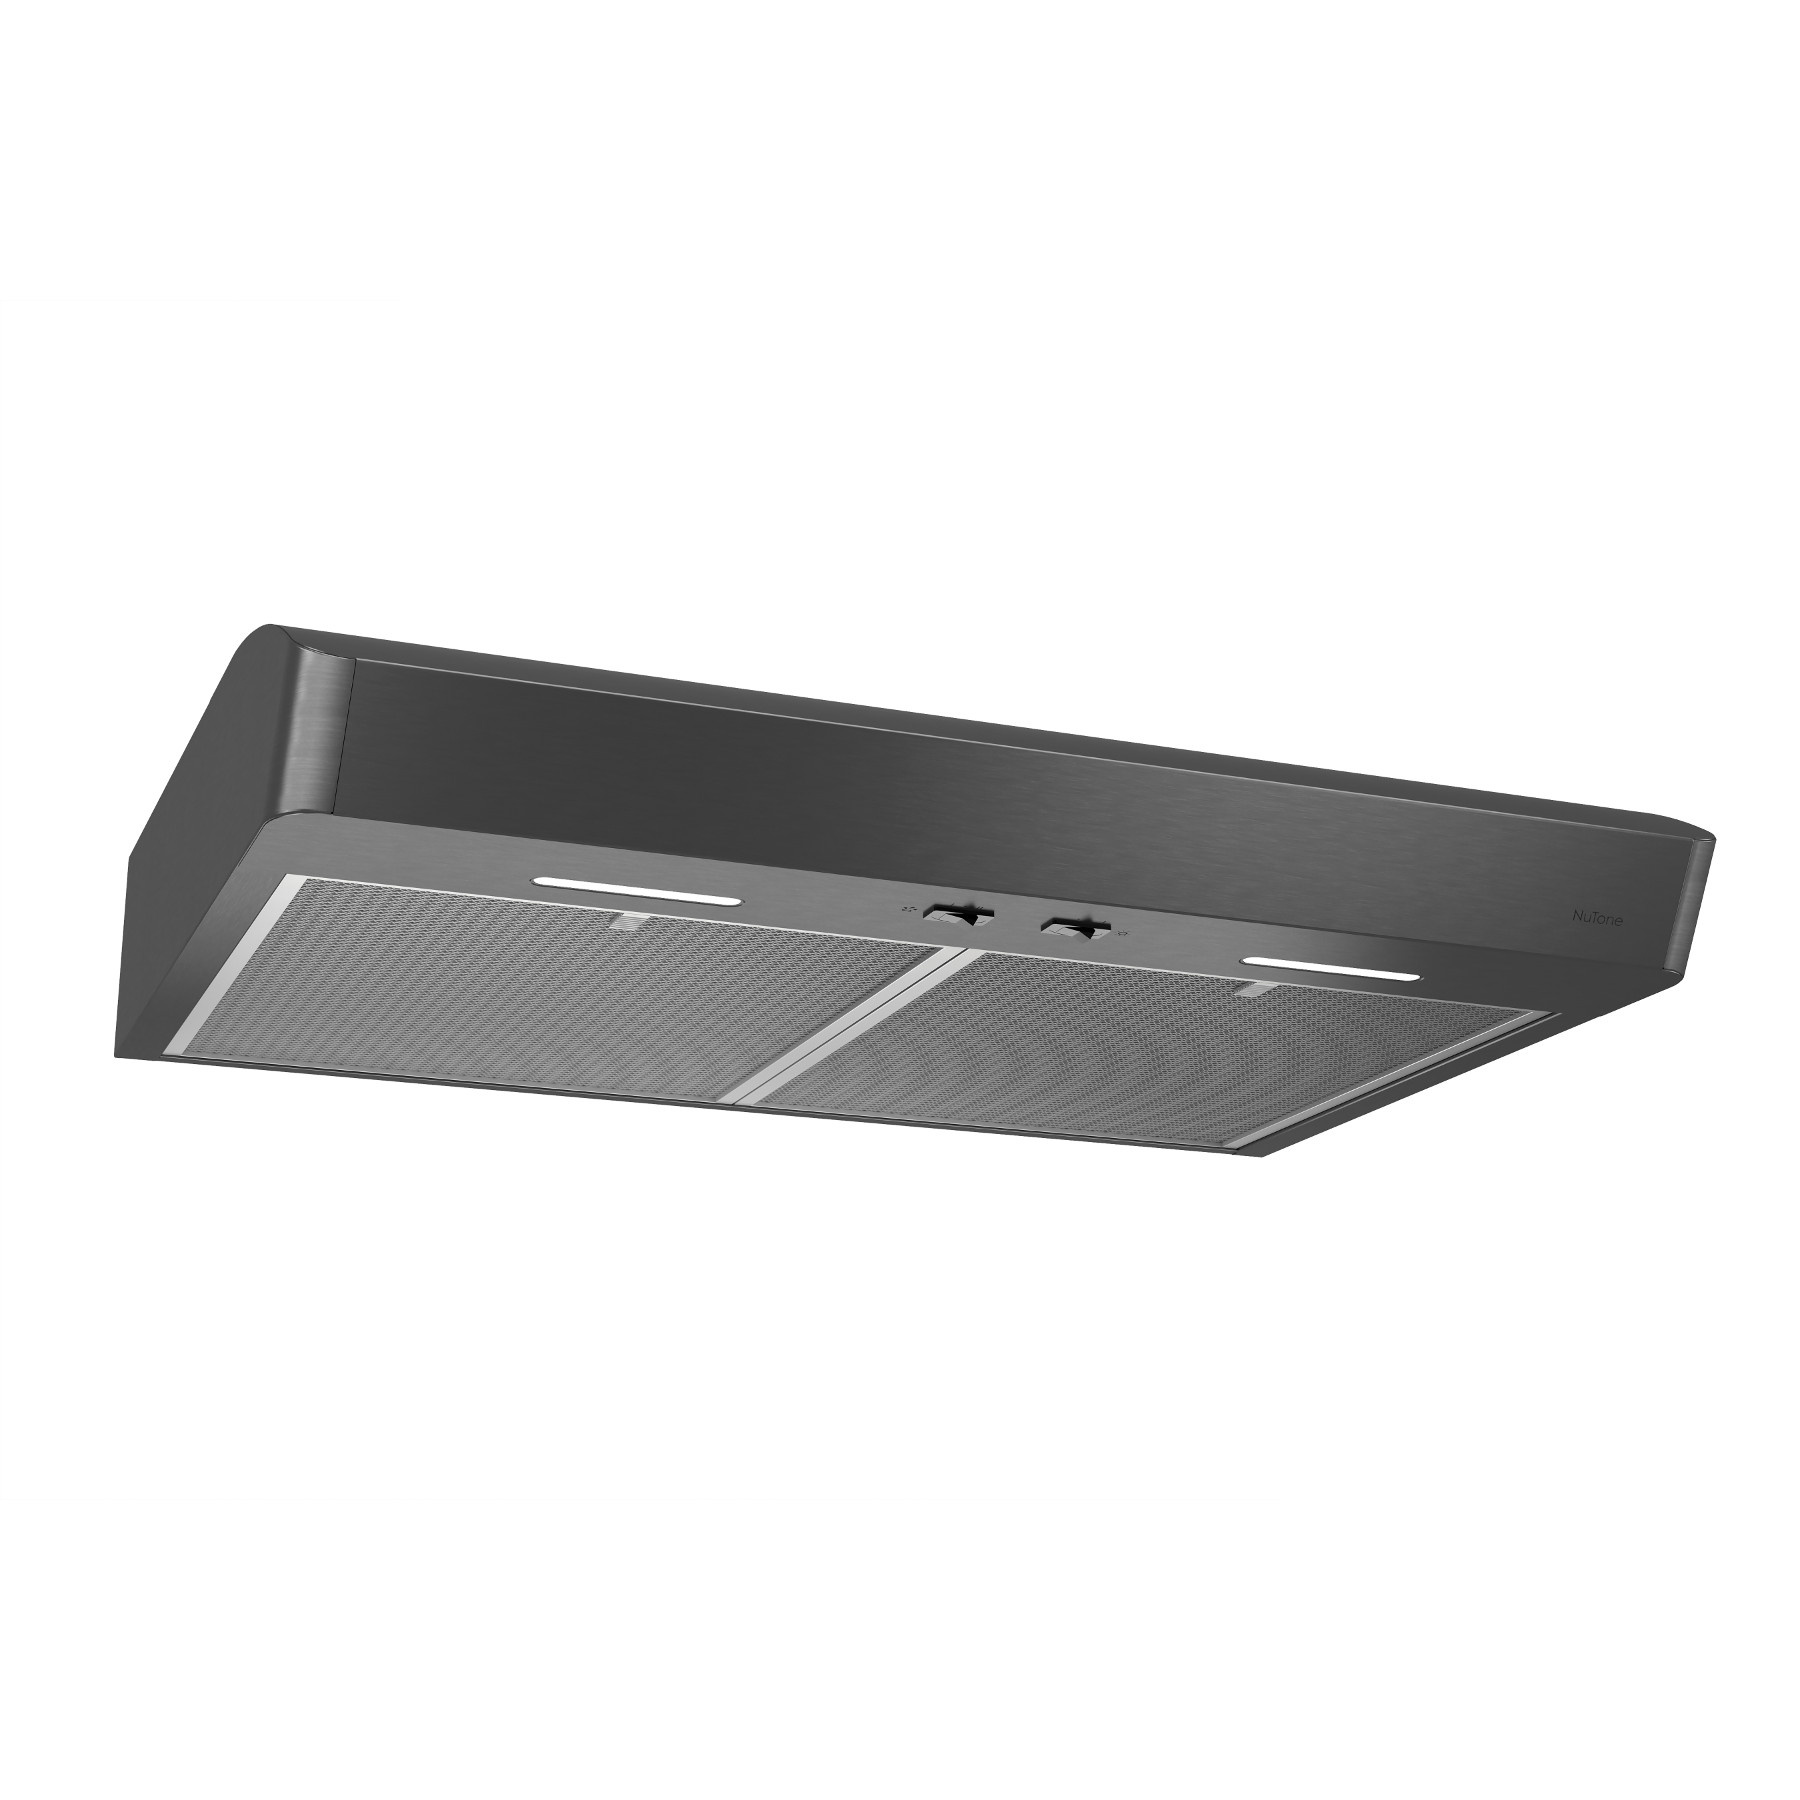 Mantra 30-Inch Convertible Under-Cabinet Range Hood, 300 CFM, Black Stainless Steel